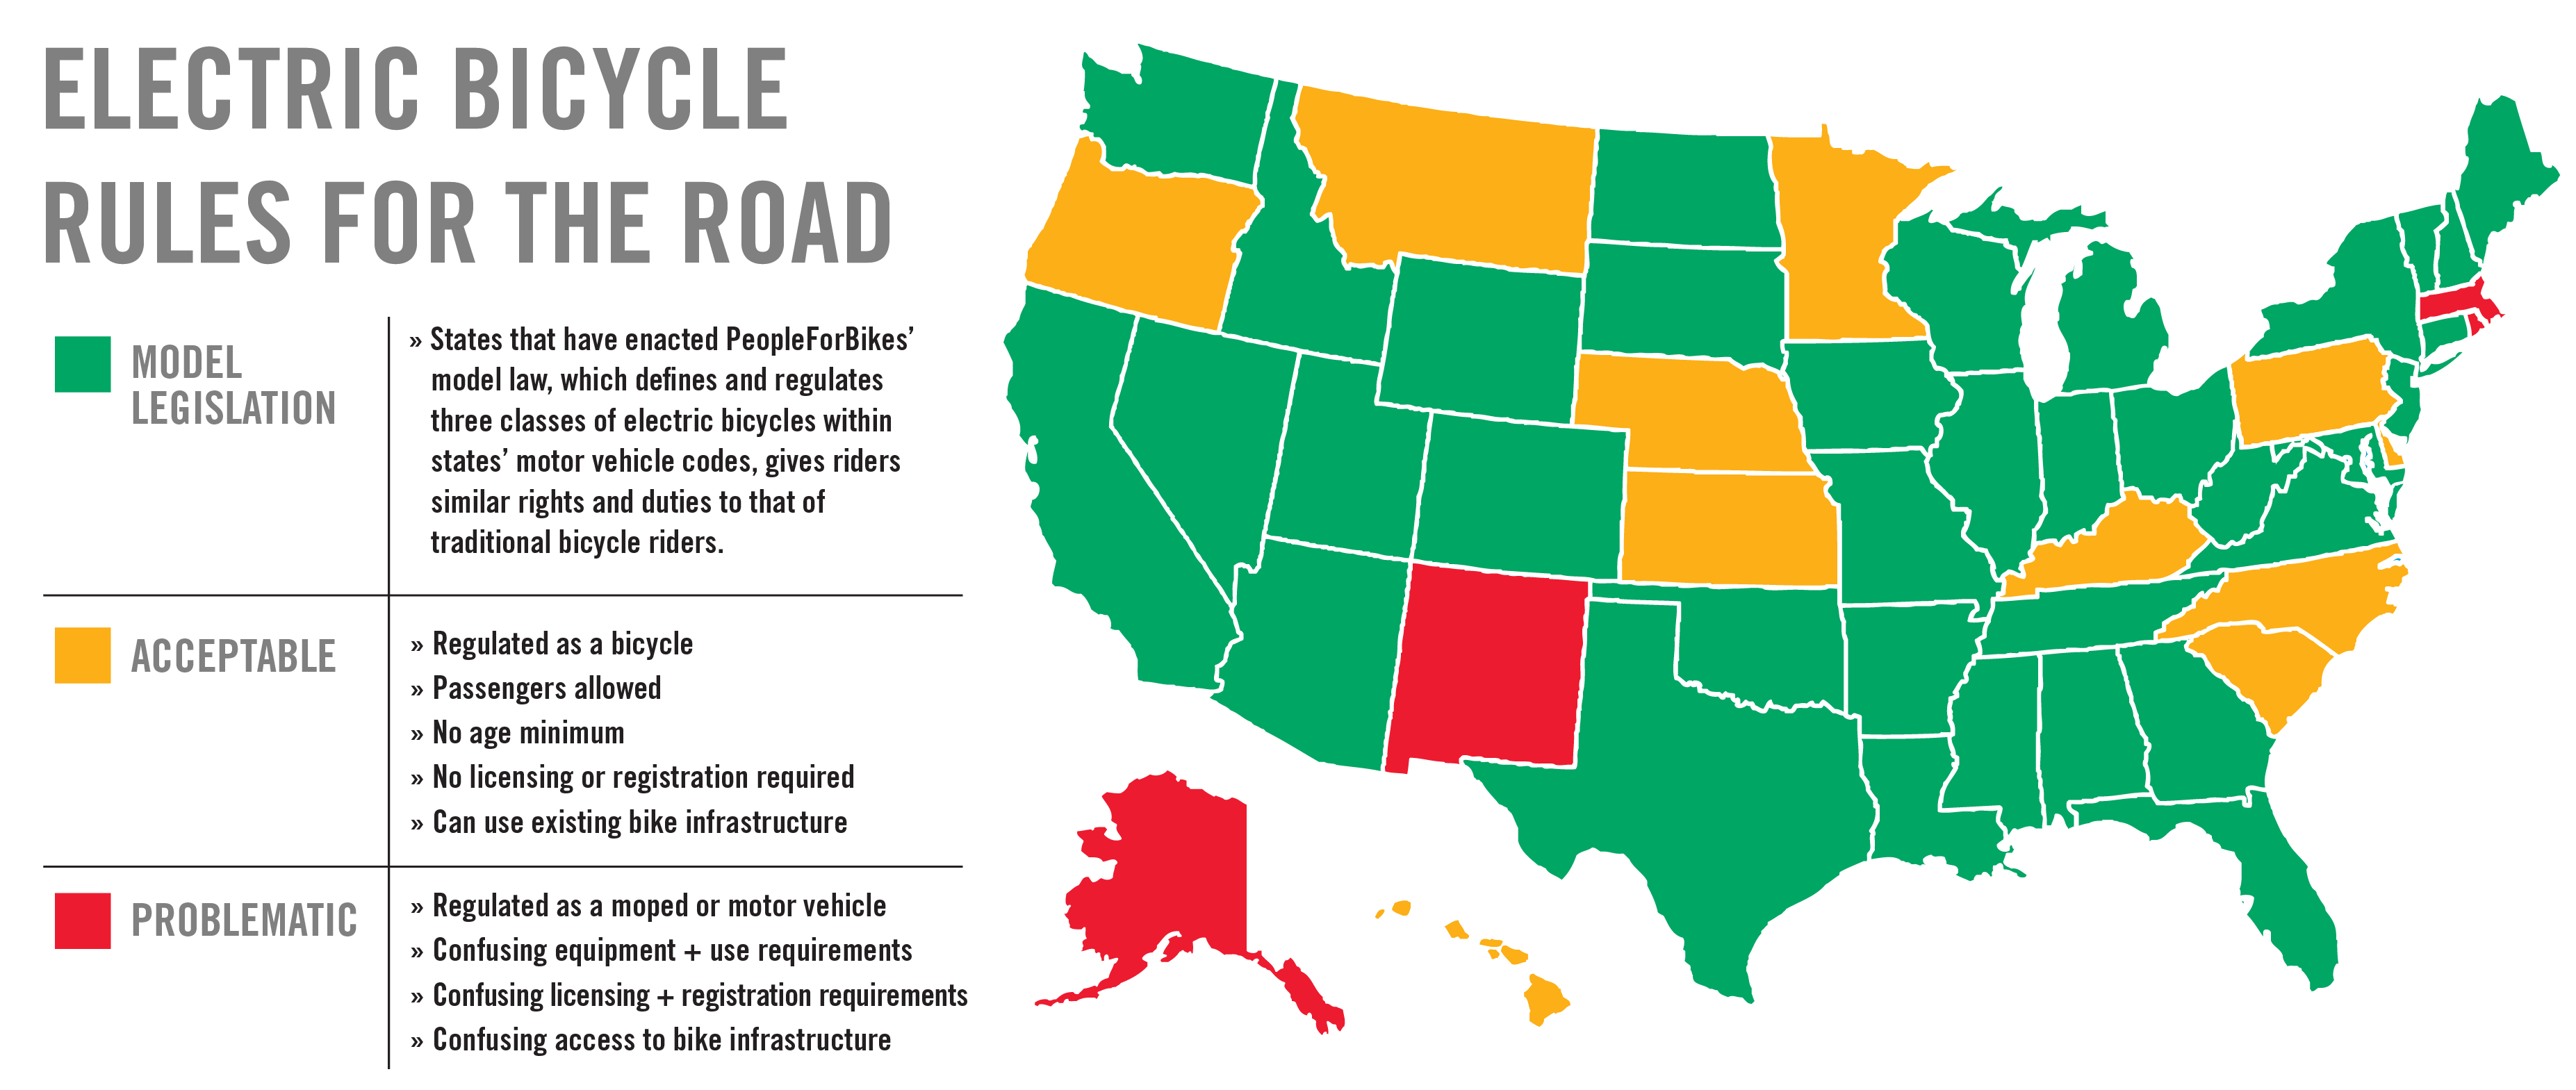 Map of electric bike rules in different areas of United States